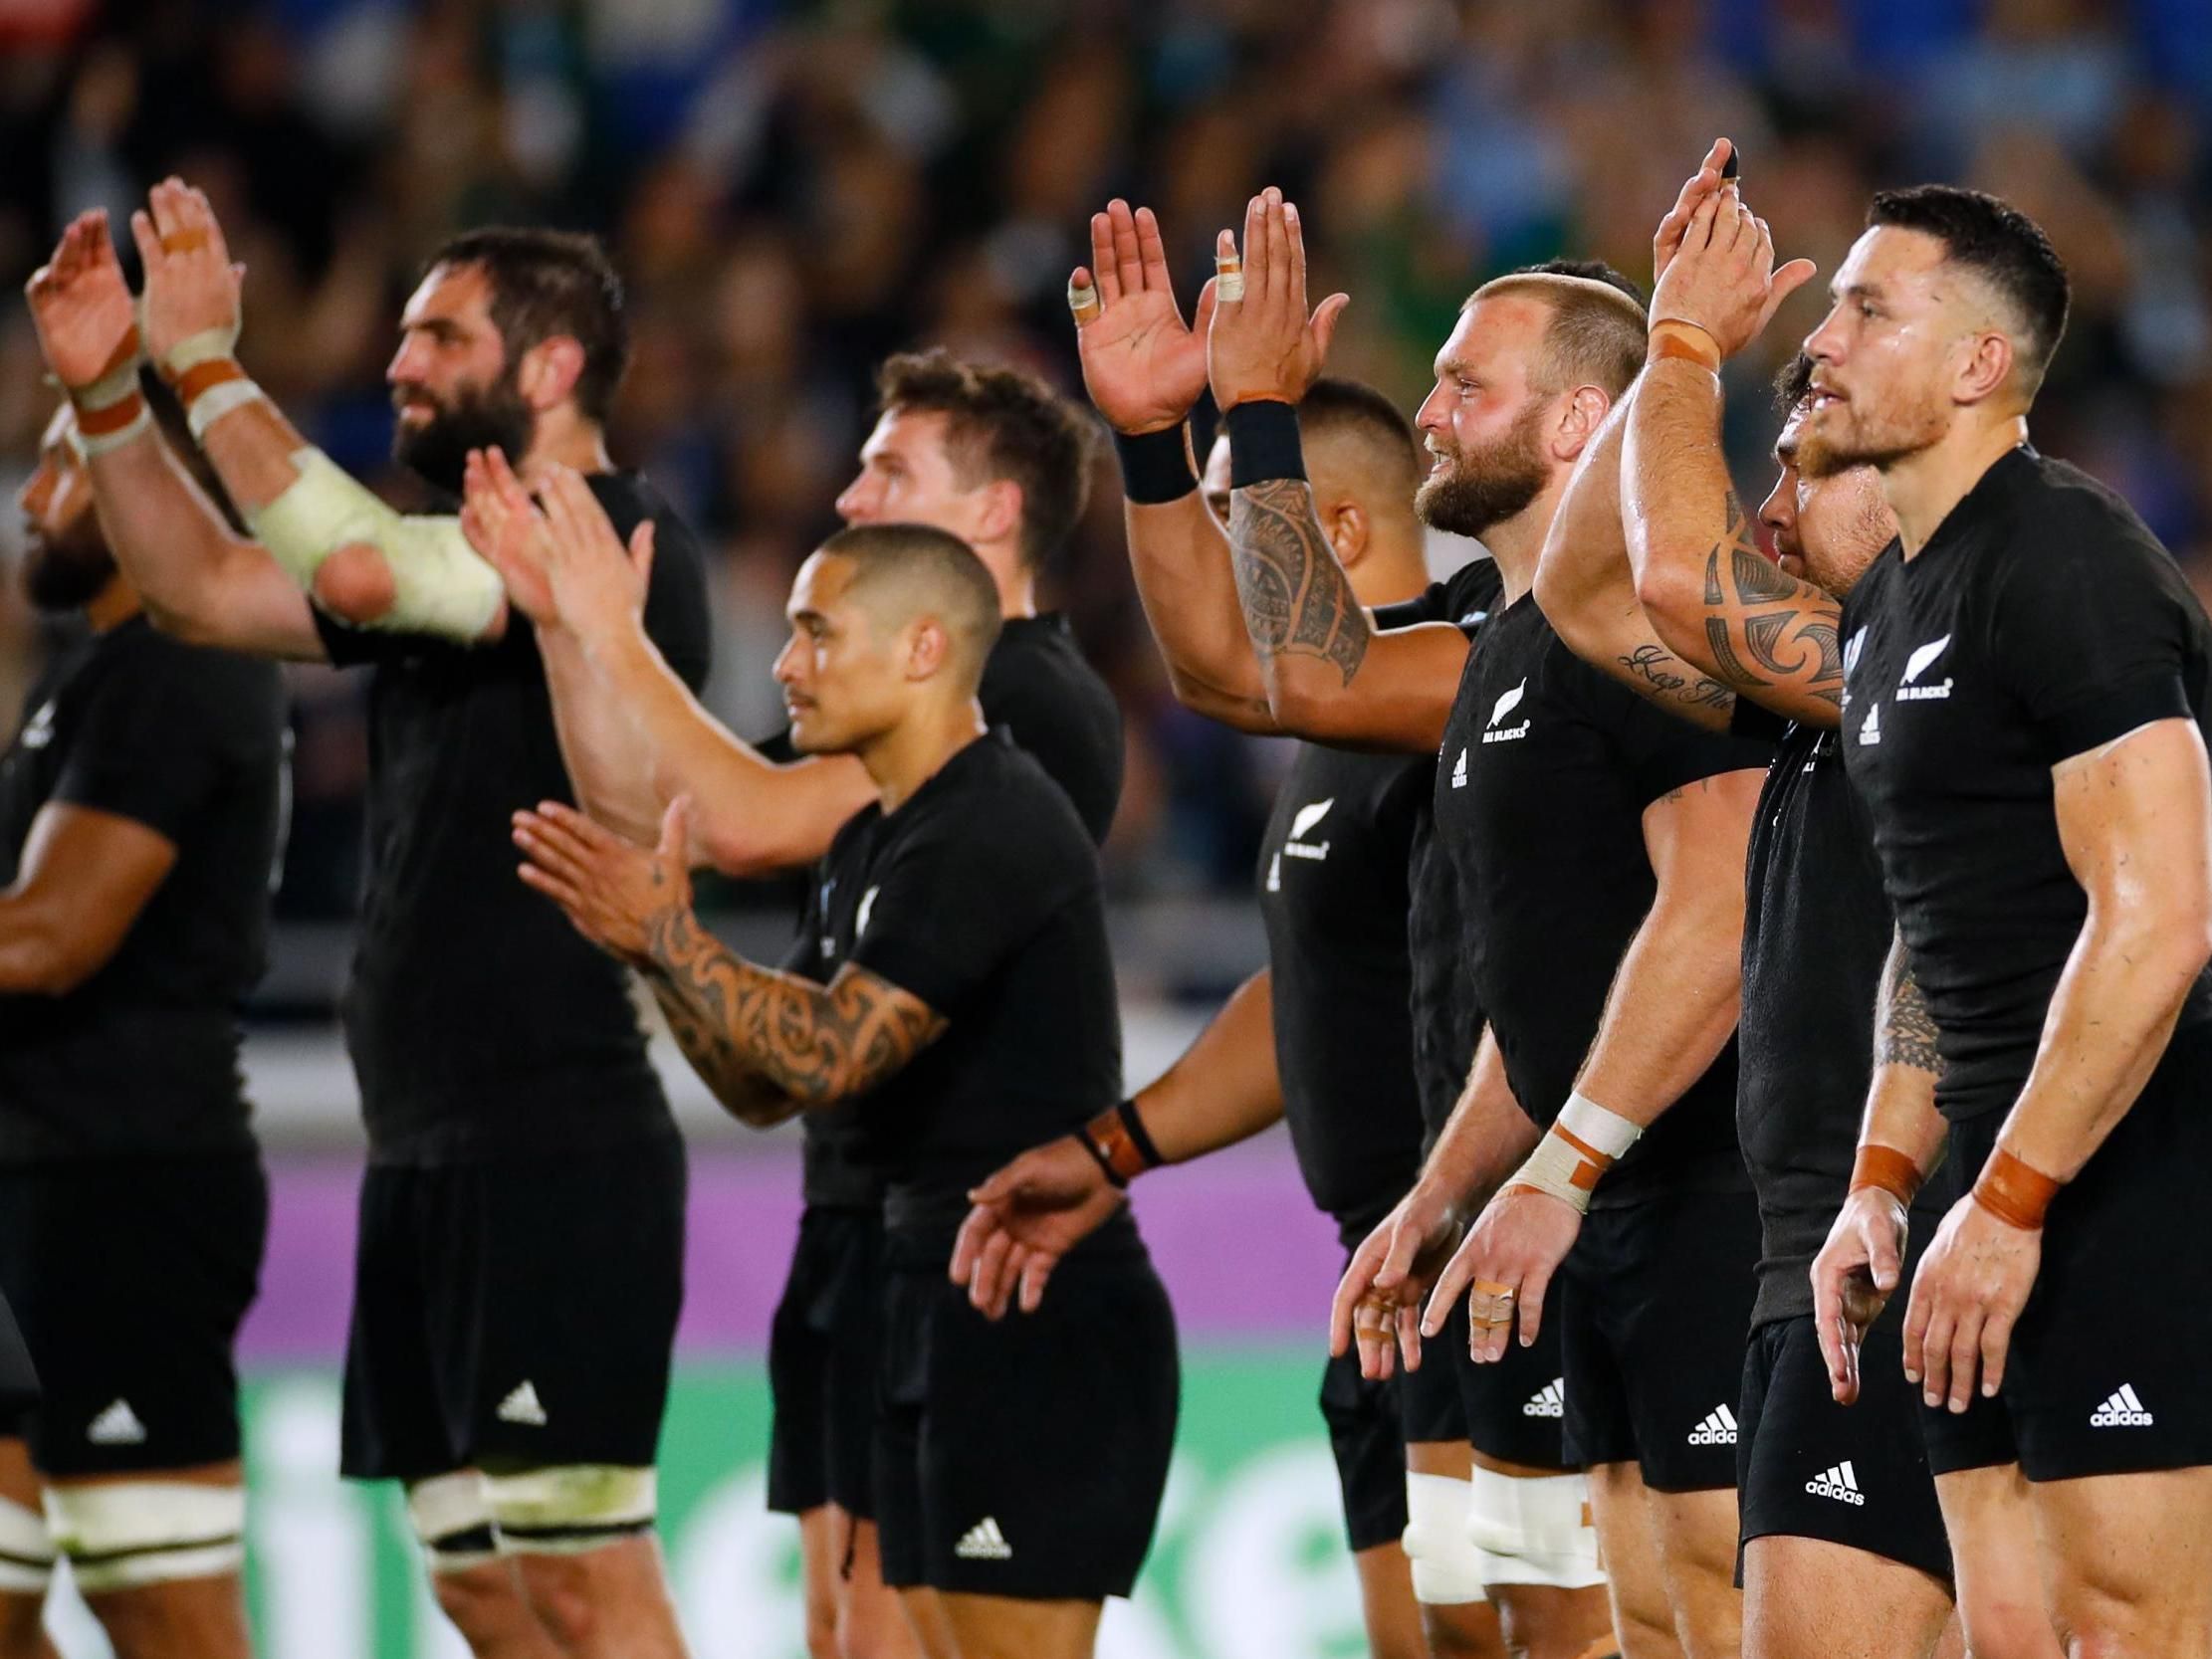 Rugby World Cup 2019: Having beaten South Africa, New Zealand are only just getting started